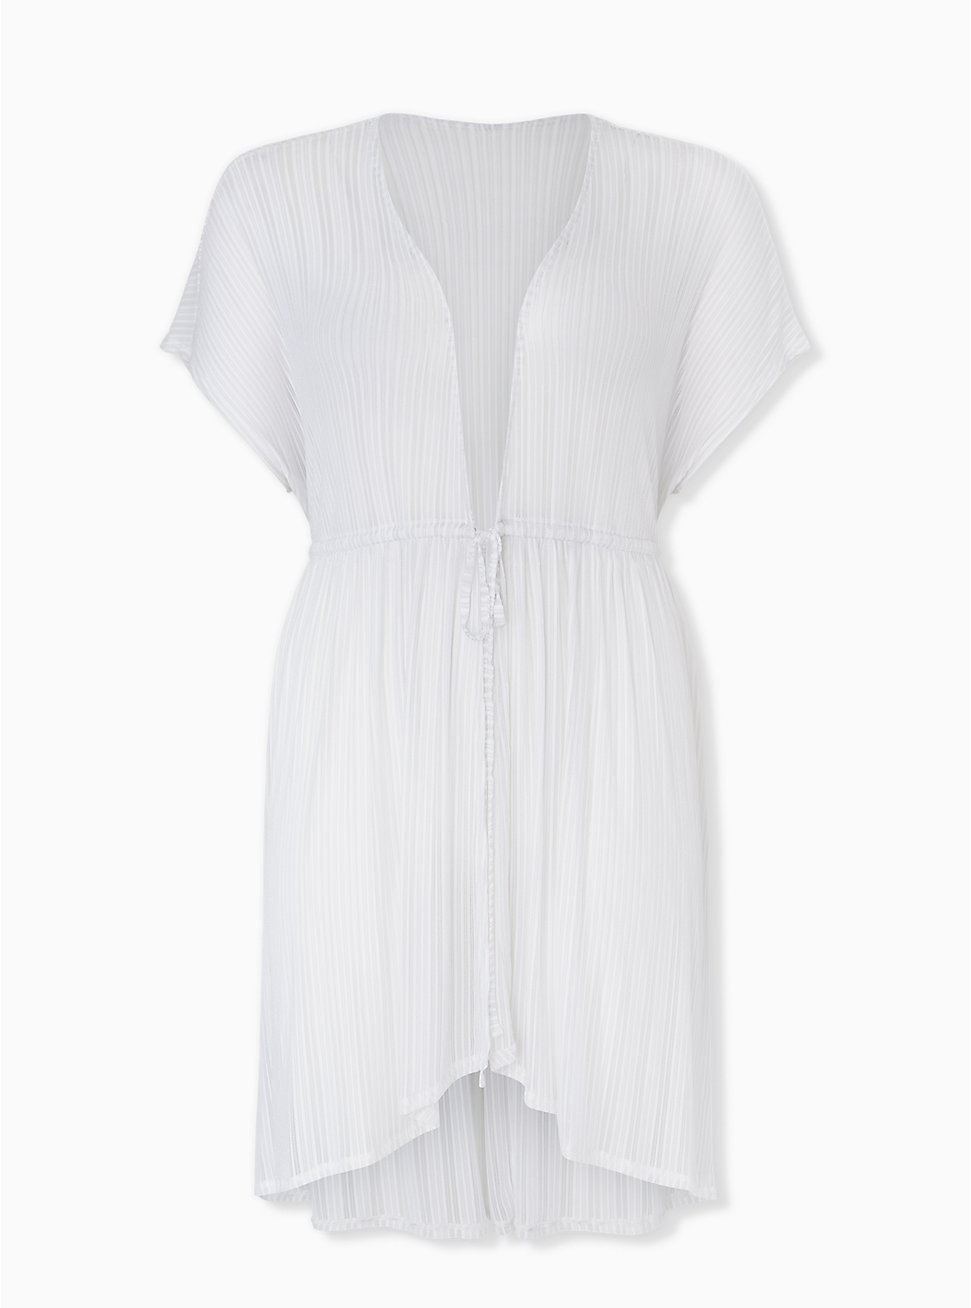 White Lurex Stripe Kaftan Swim Cover Up, BRIGHT WHITE, hi-res